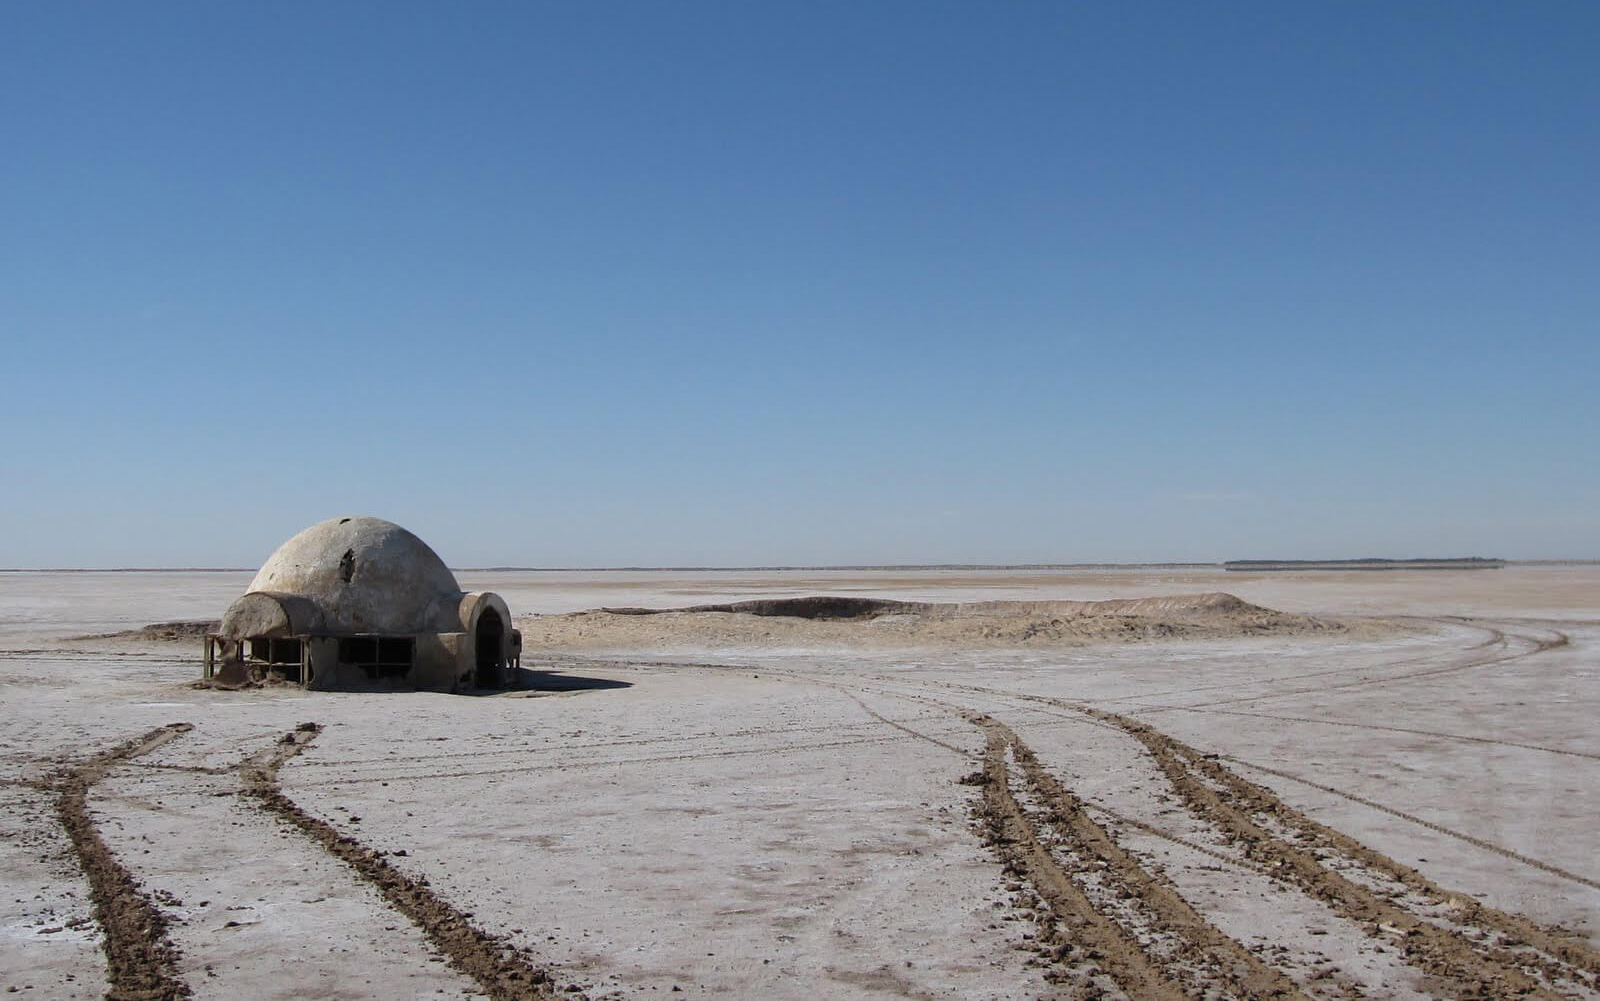 Chott el-Jerid, remains of the set at one of the filming locations used for the Lars Homestead in Star Wars franchise | Yeezy Home by Kanye West| STIRworld